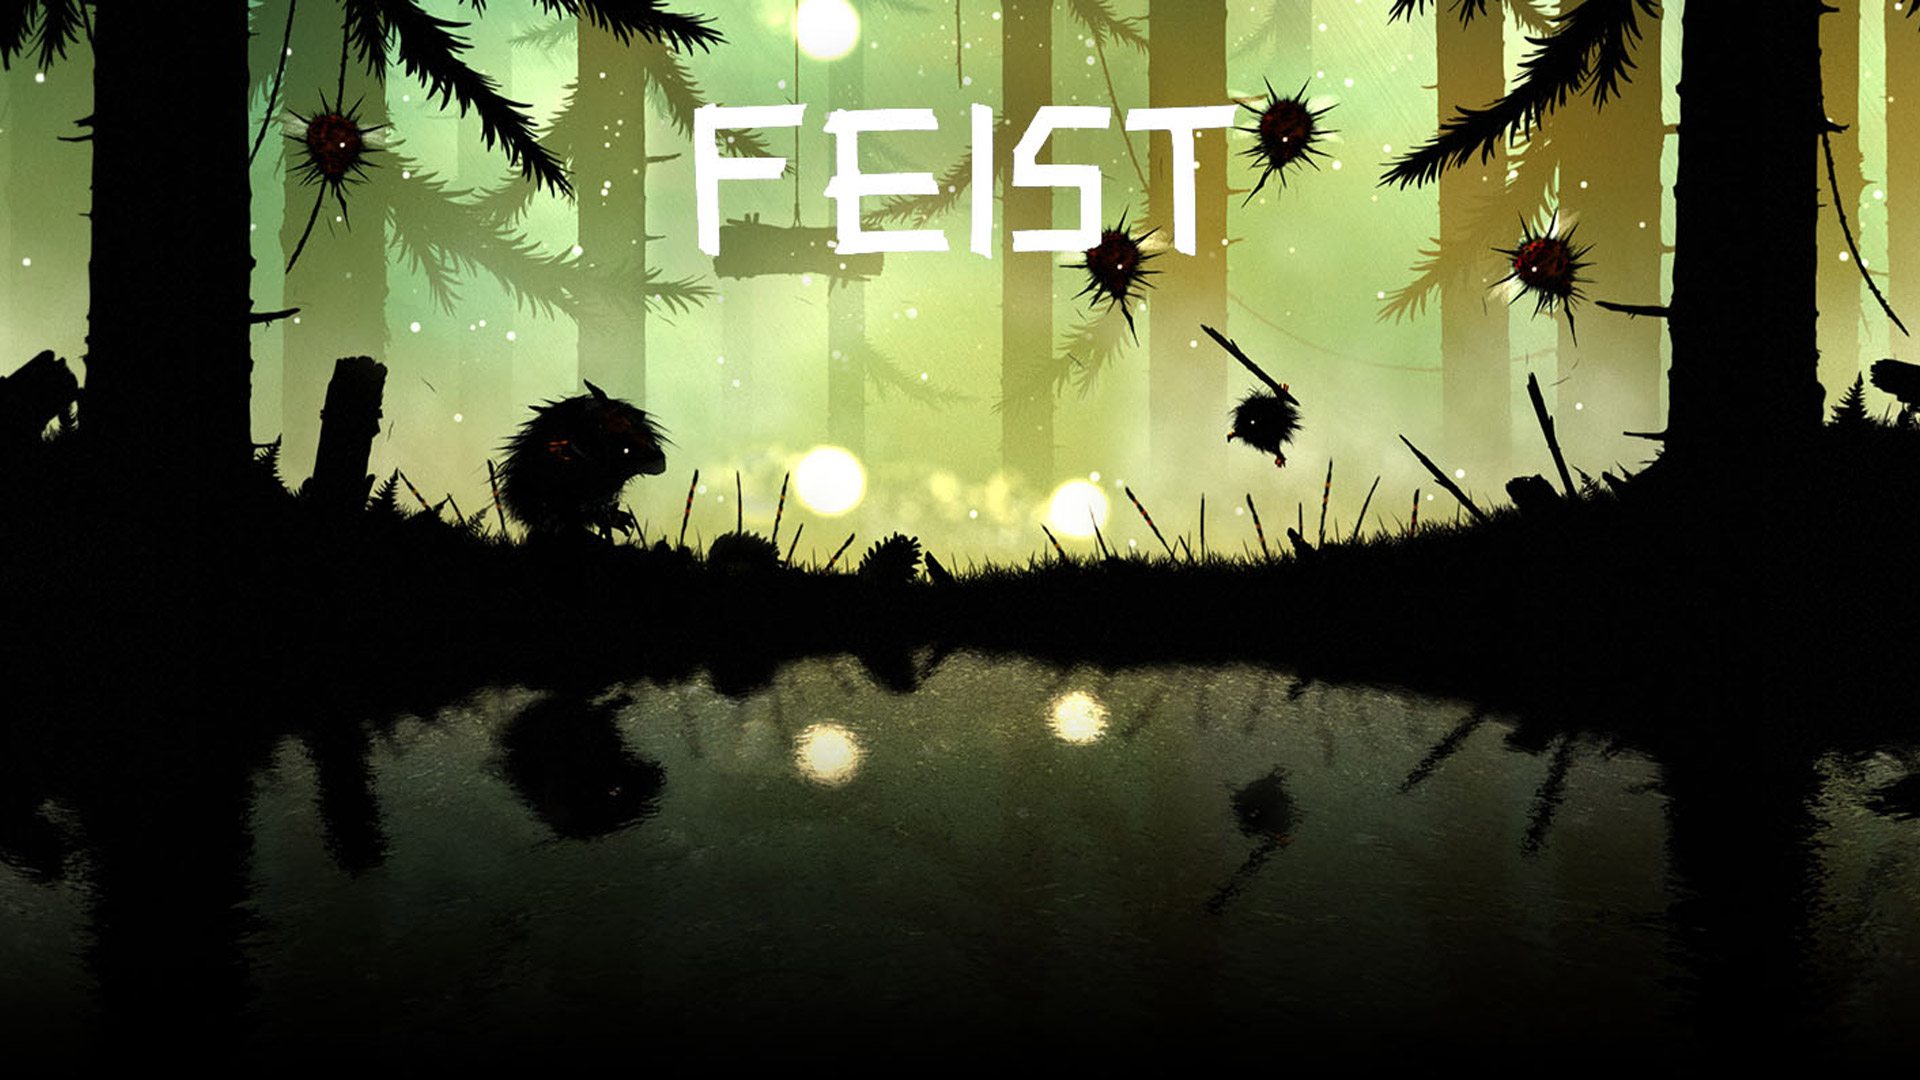 Free Feist Wallpaper in 1920x1080